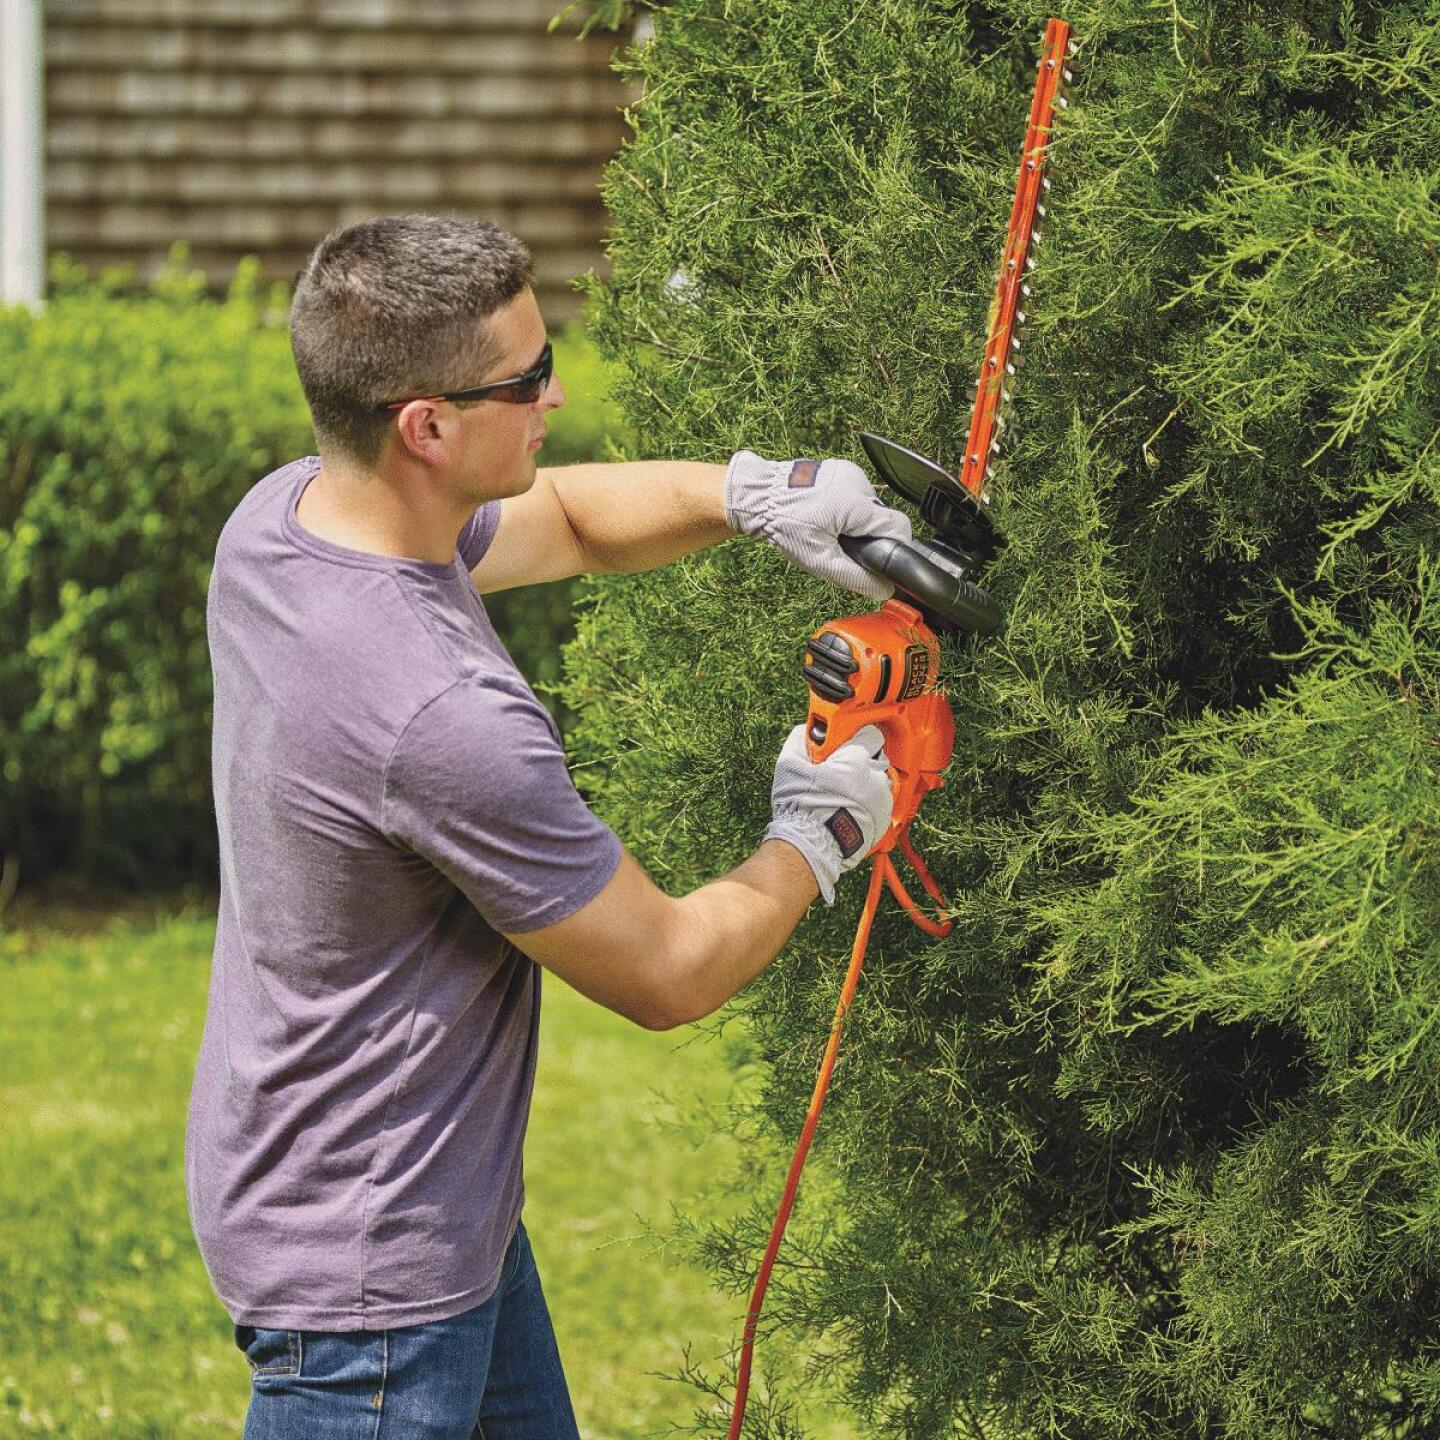 Black & Decker 18 In. 3.5-Amp Corded Electric Hedge Trimmer Image 3